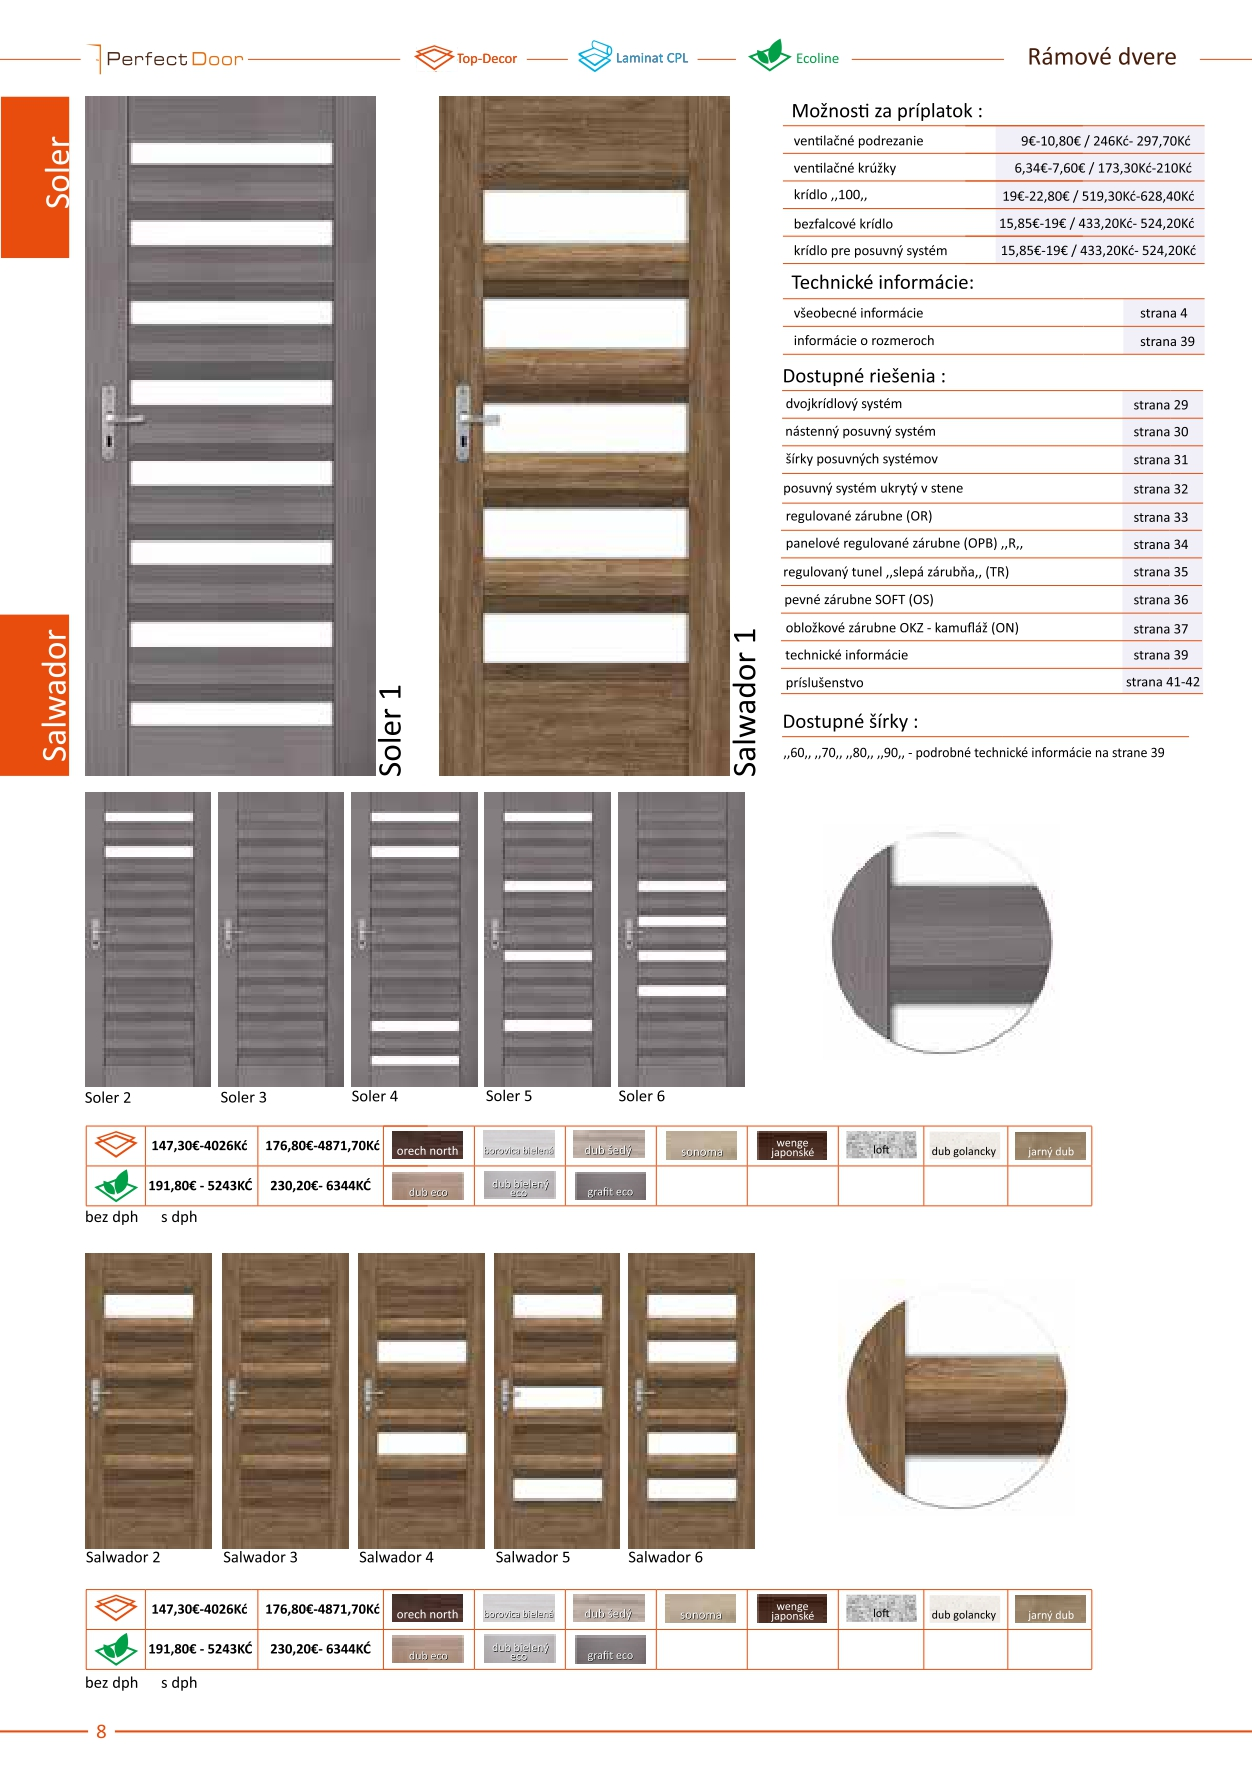 Perfectdoor katalog  1 2019 pages-to-jpg-0008